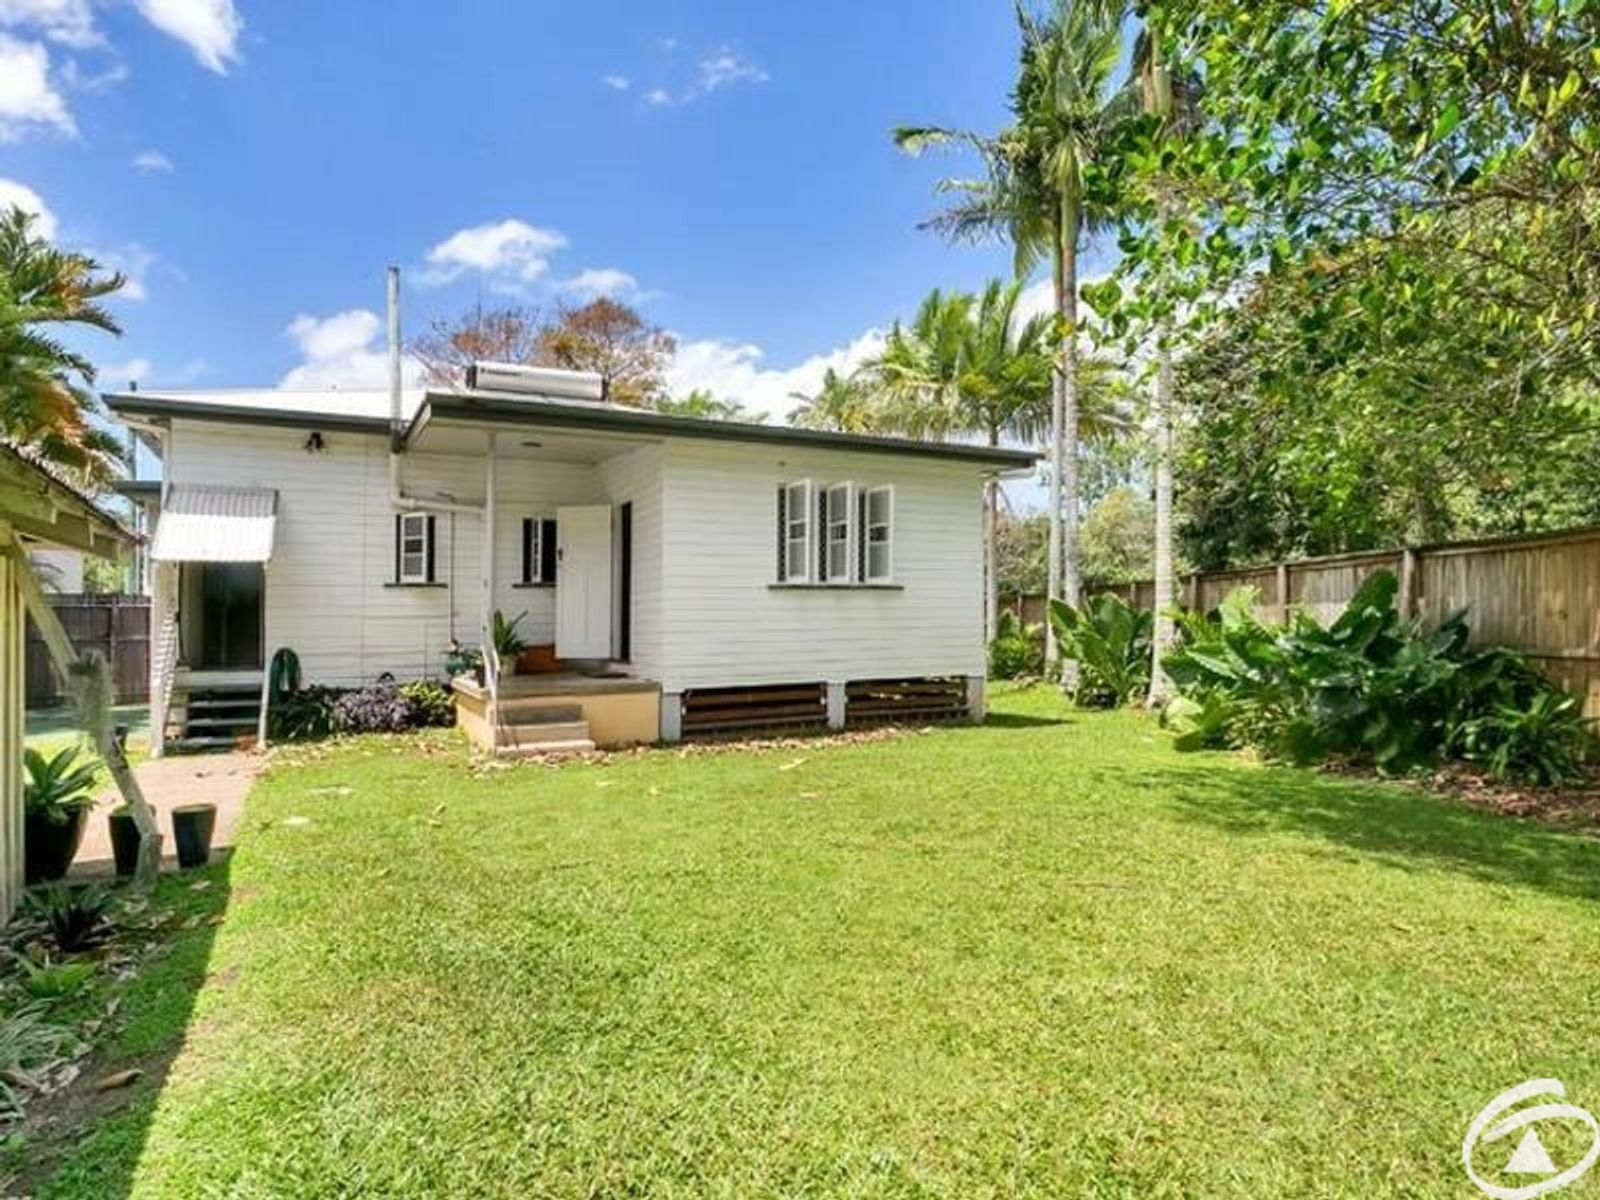 2/42 Lily Street, Cairns North, QLD 4870